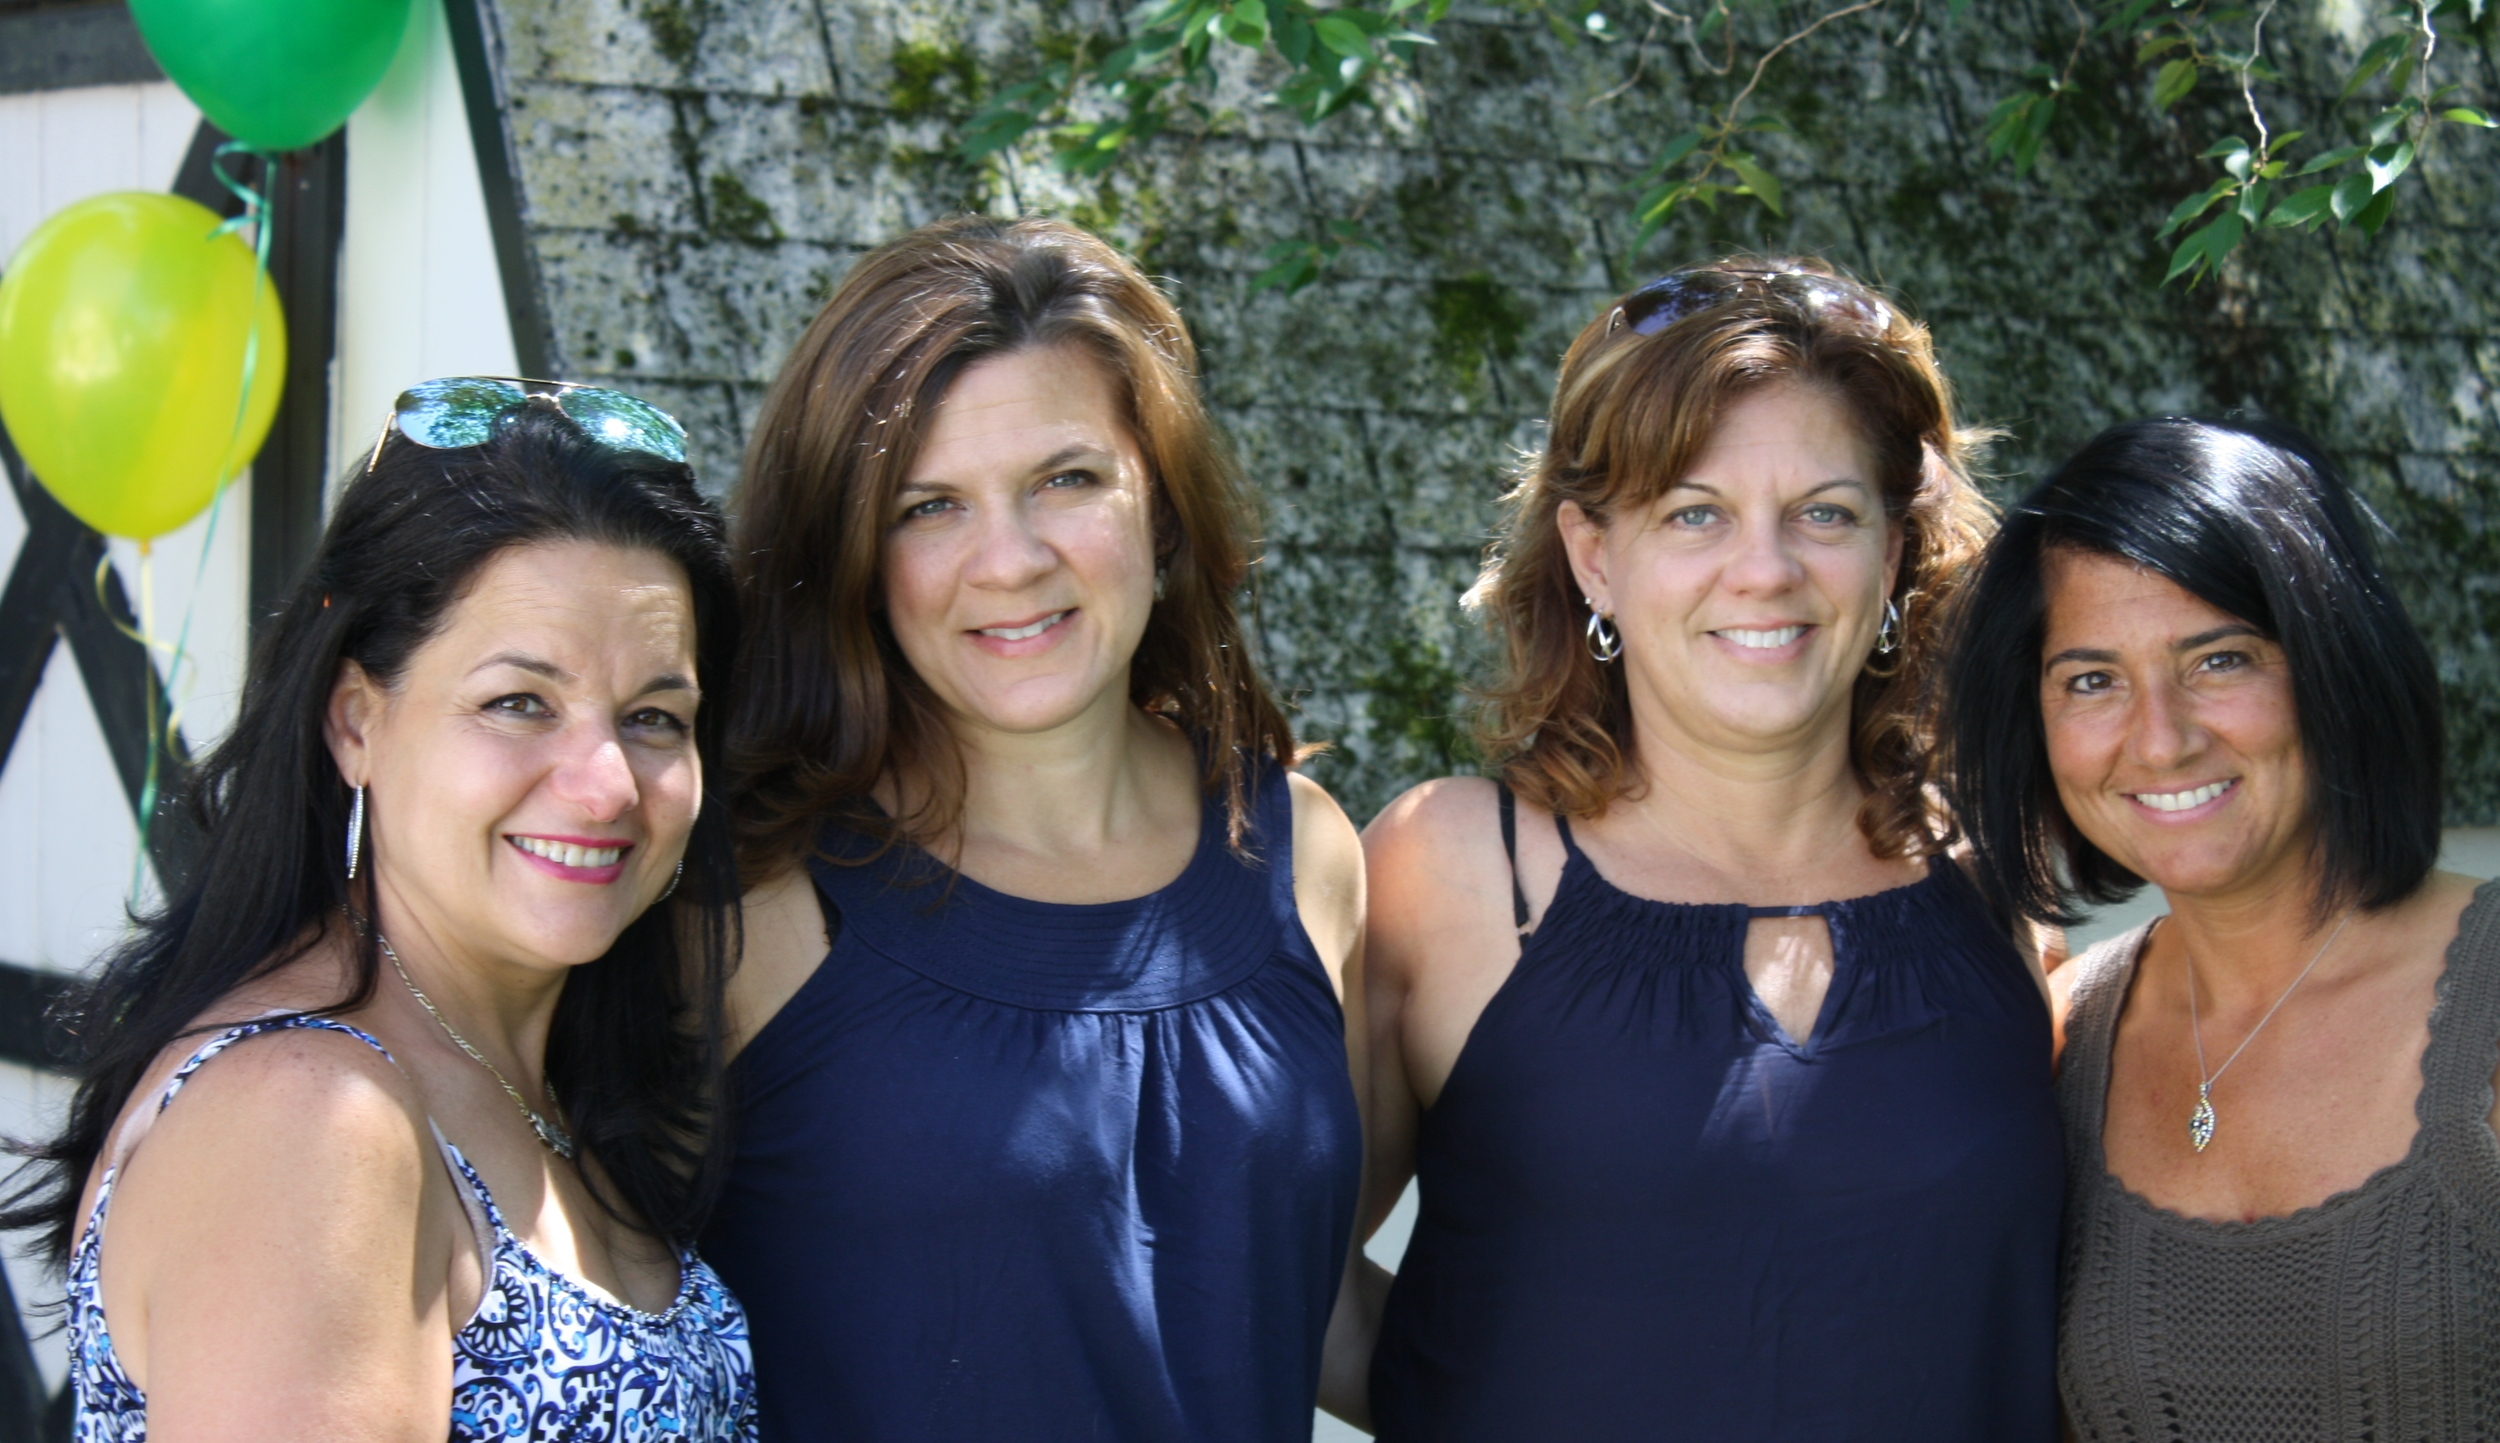 SIsters by blood and love:  Delia, Kelly, Denise & pamela